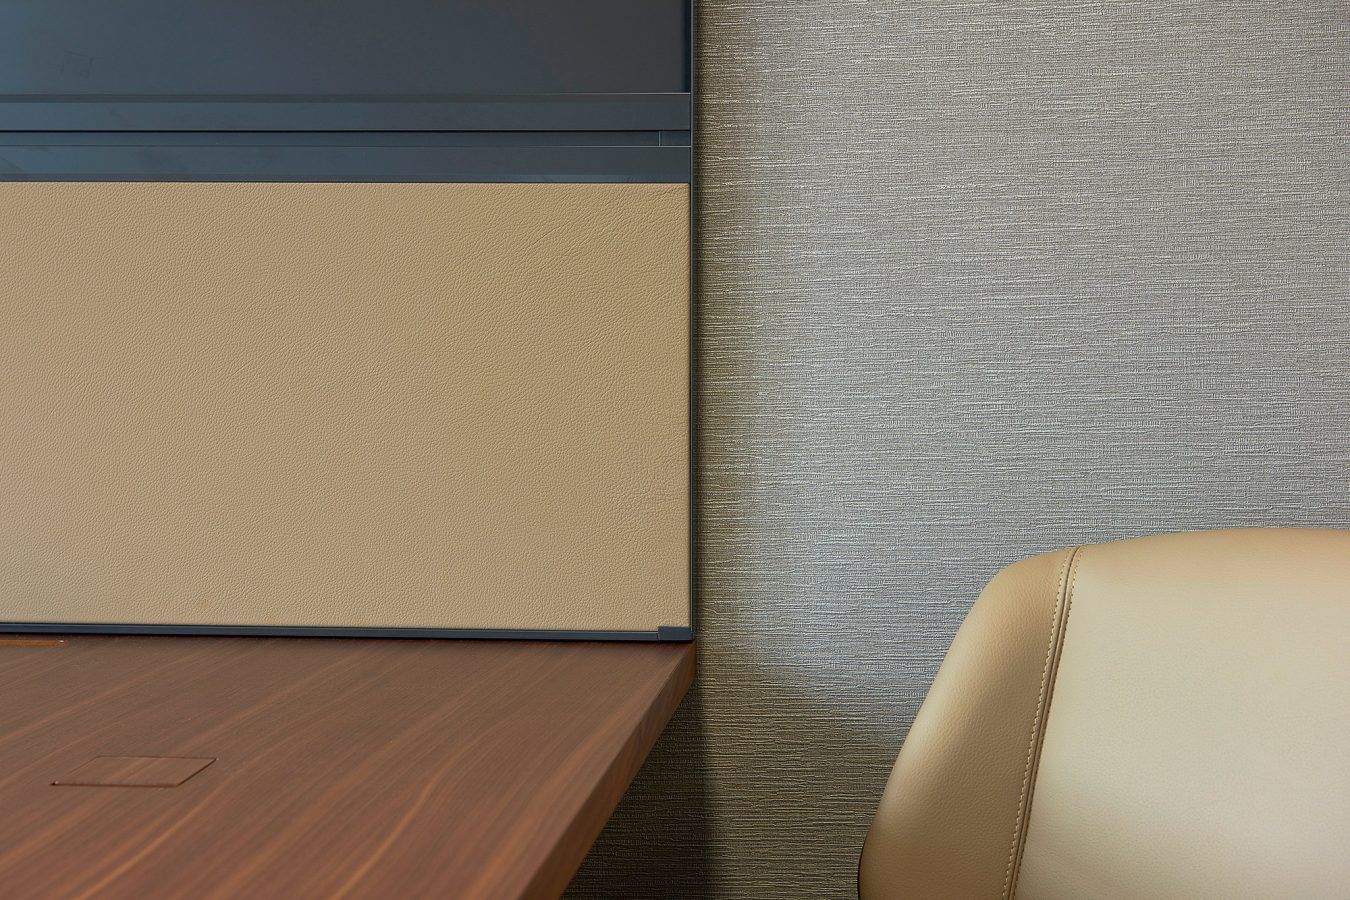 Office refurbishment and office fit out, interior decoration, neutral colours, for meeting rooms near London.